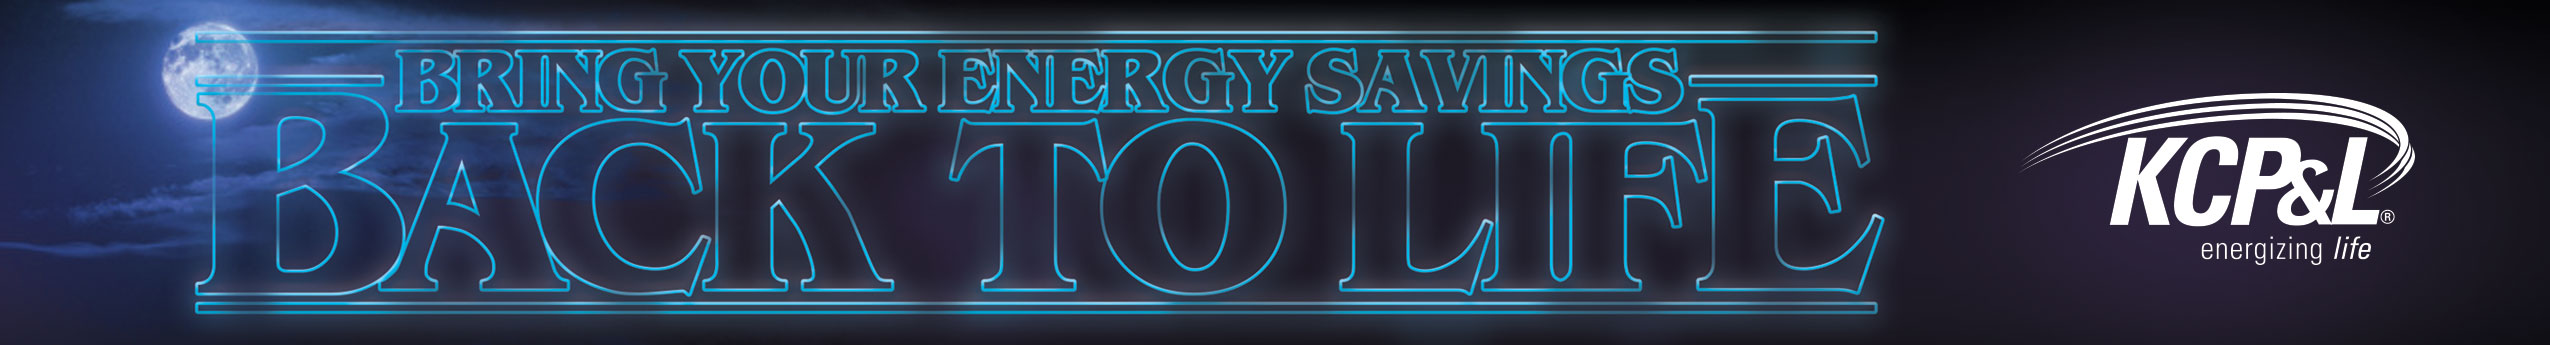 Bring your energy savings back to life!